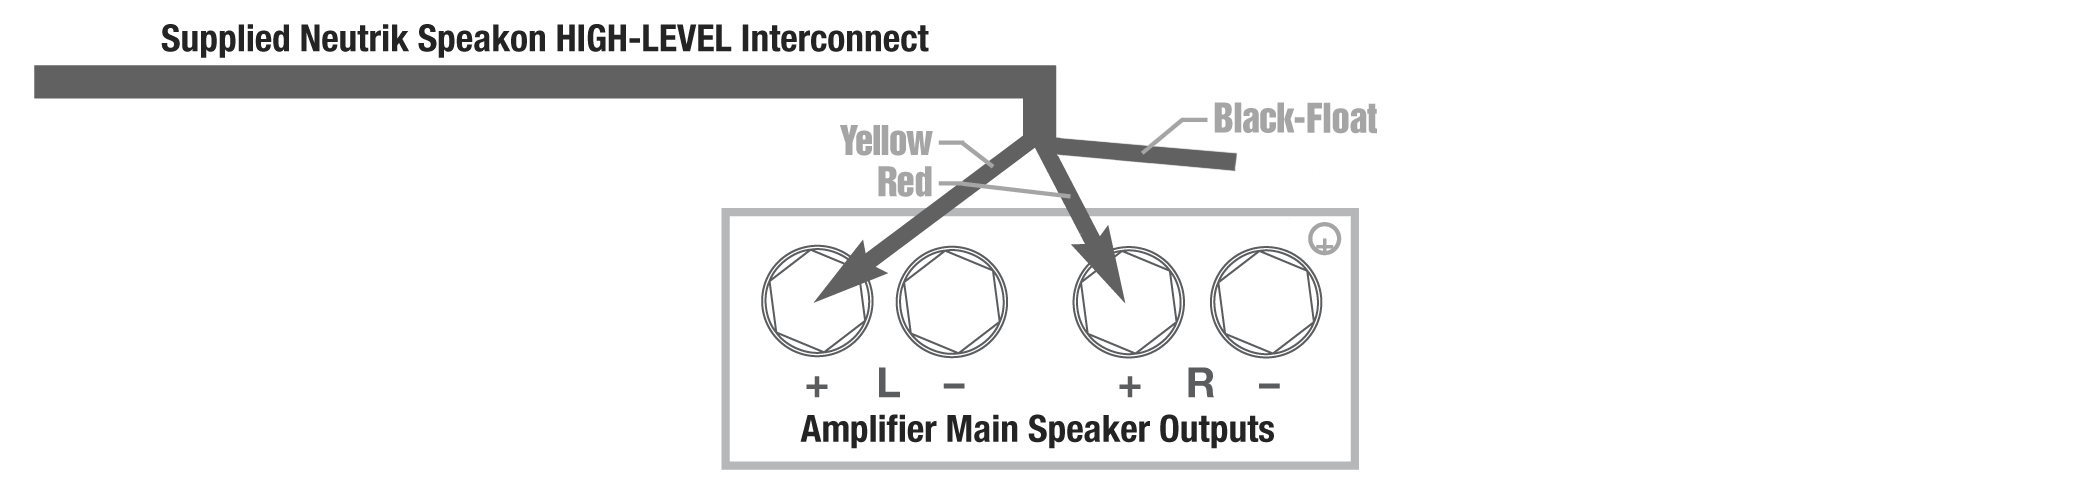 Class_D_connection_image1 class d amp connection methods rel acoustics rel speakon wiring diagram at readyjetset.co